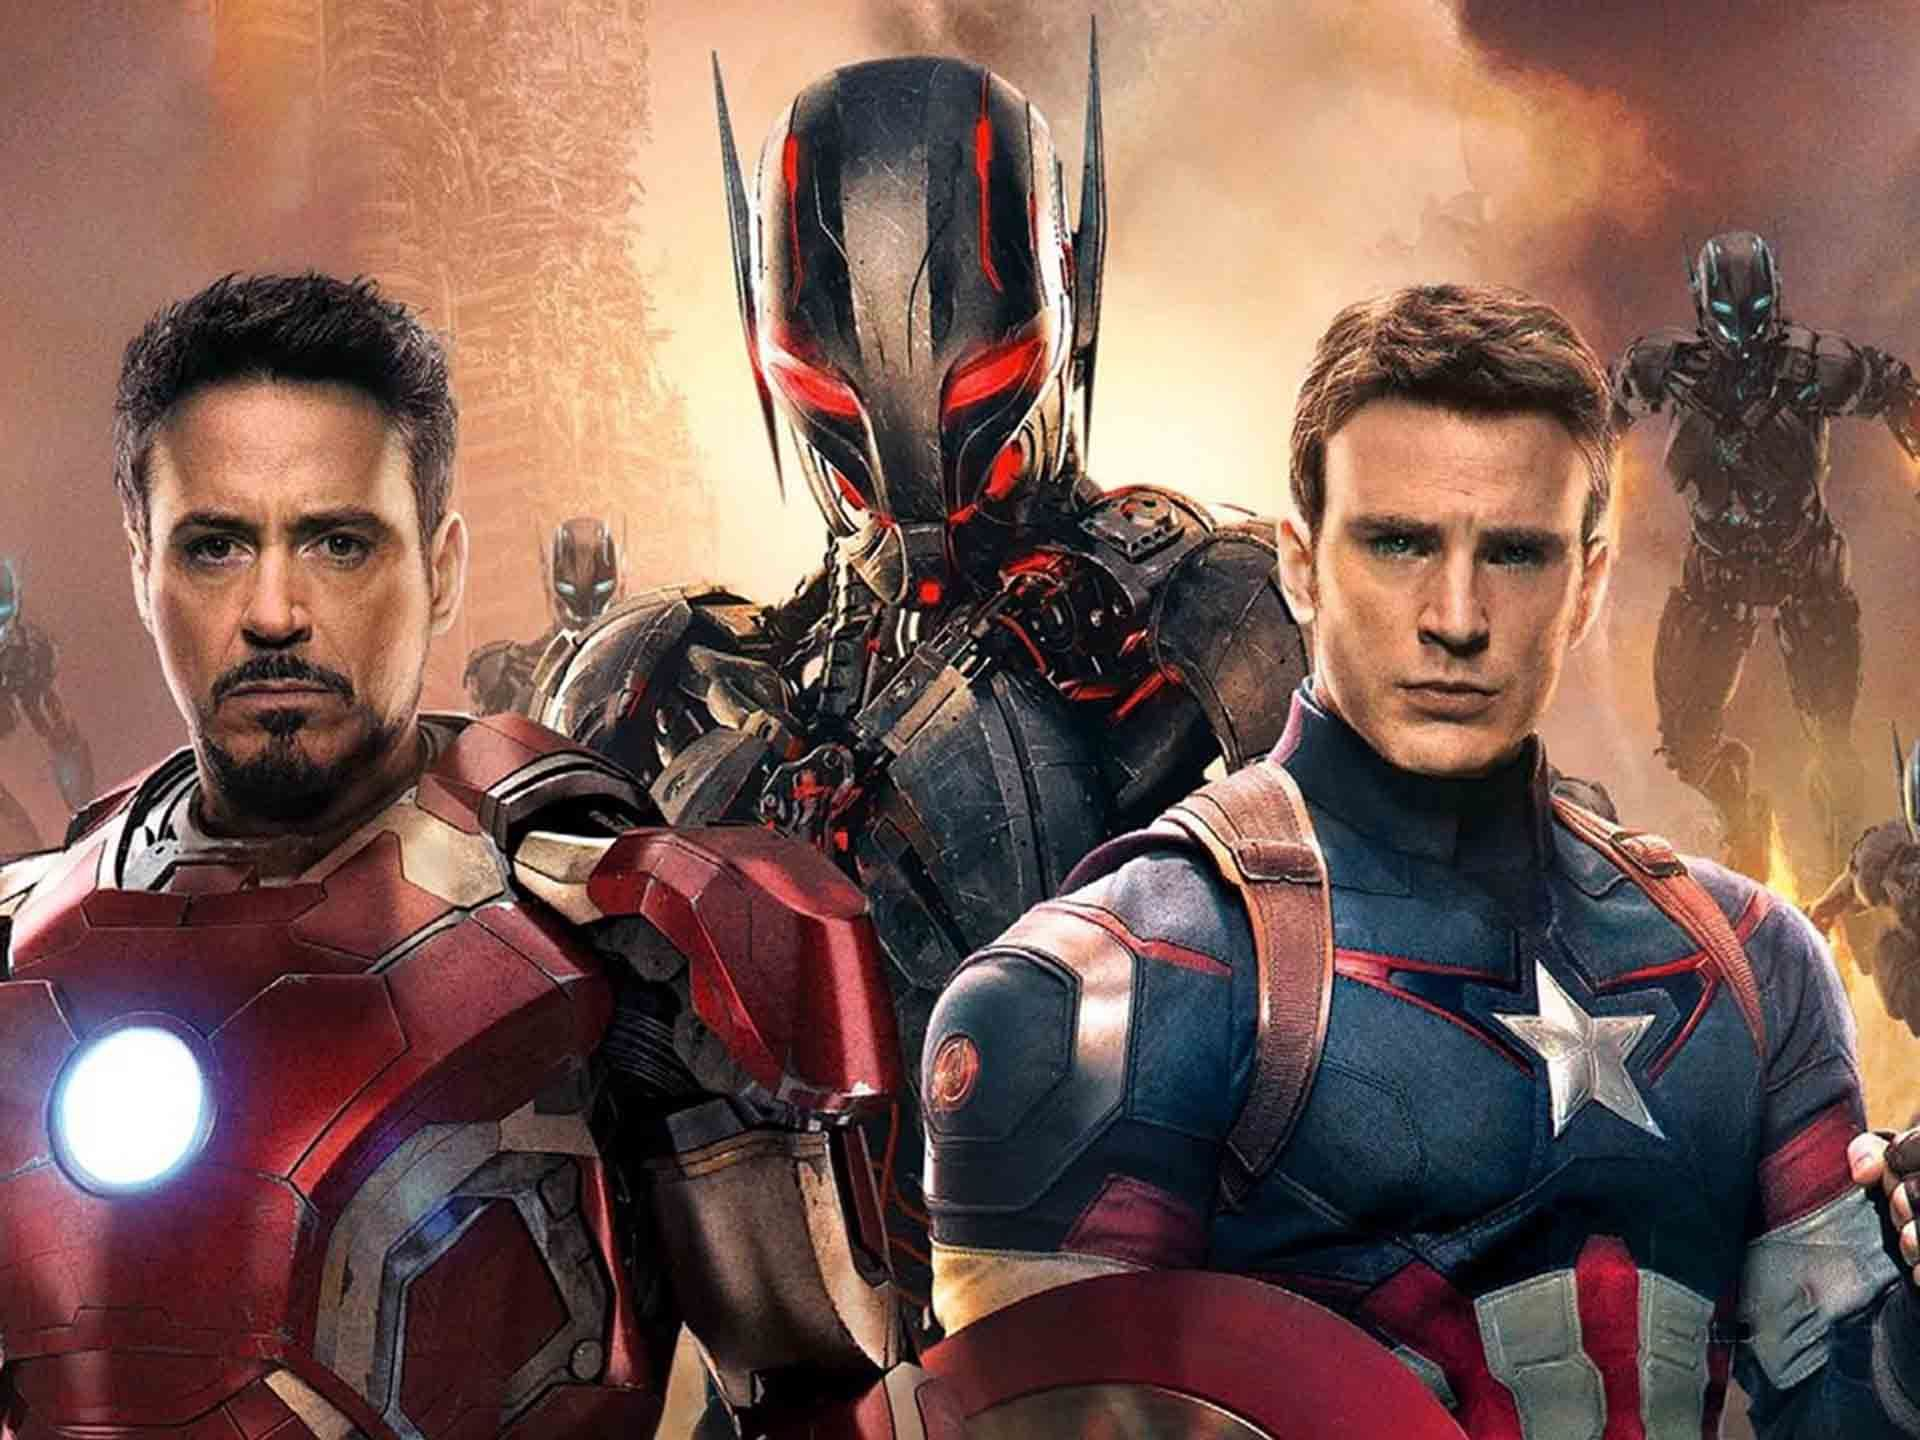 avengers age of ultron latest hd wallpapers free download | avengers